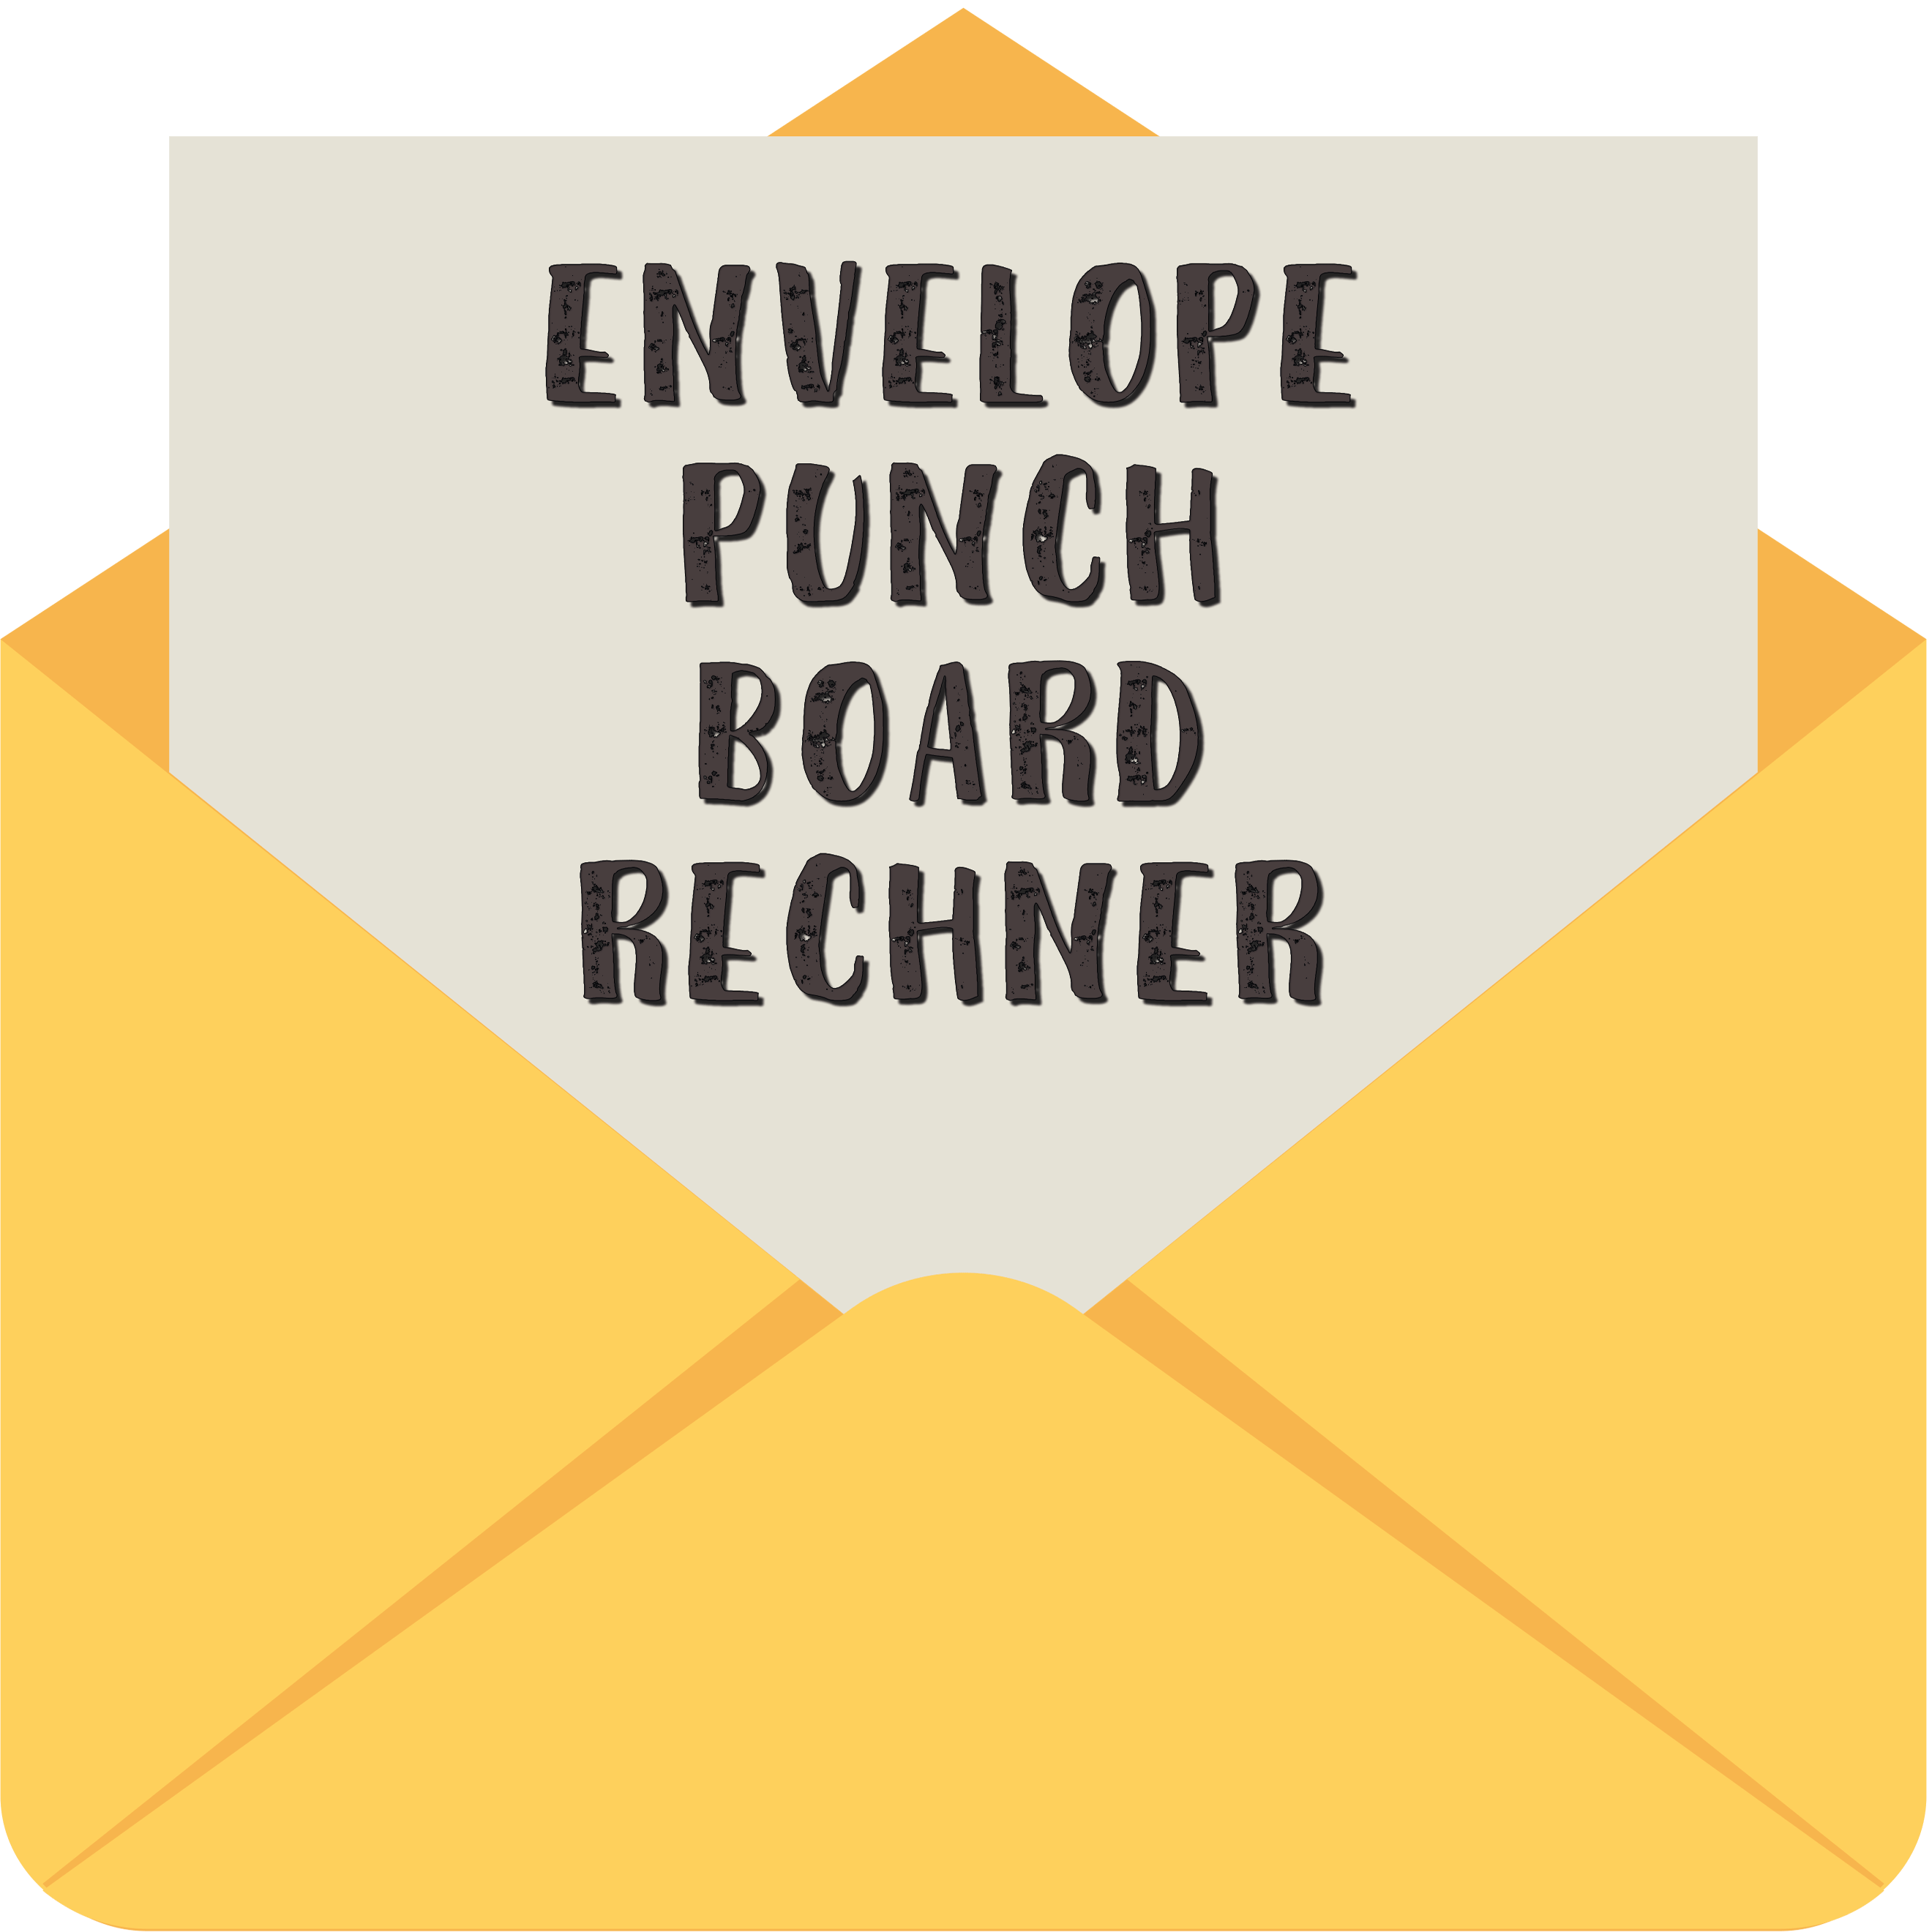 envelope-punch-board-rechner-quadrat